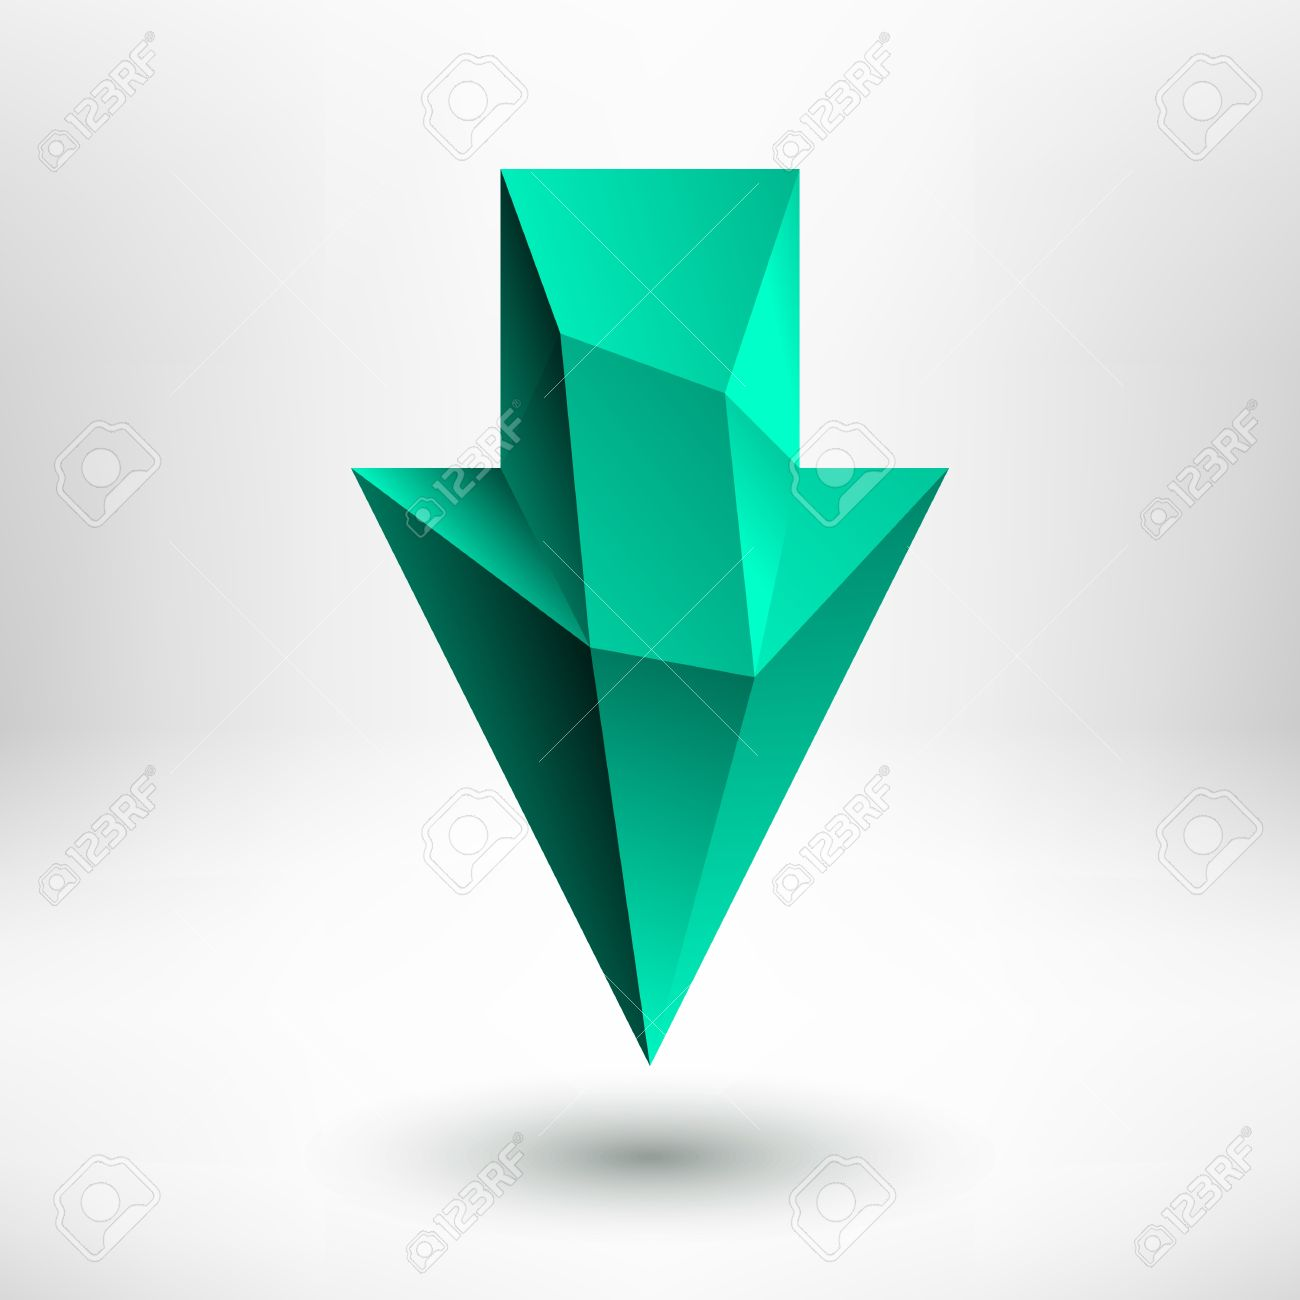 3d Green Emerald, Jade, Aquamarine, Mint, Pale Green Down Arrow.